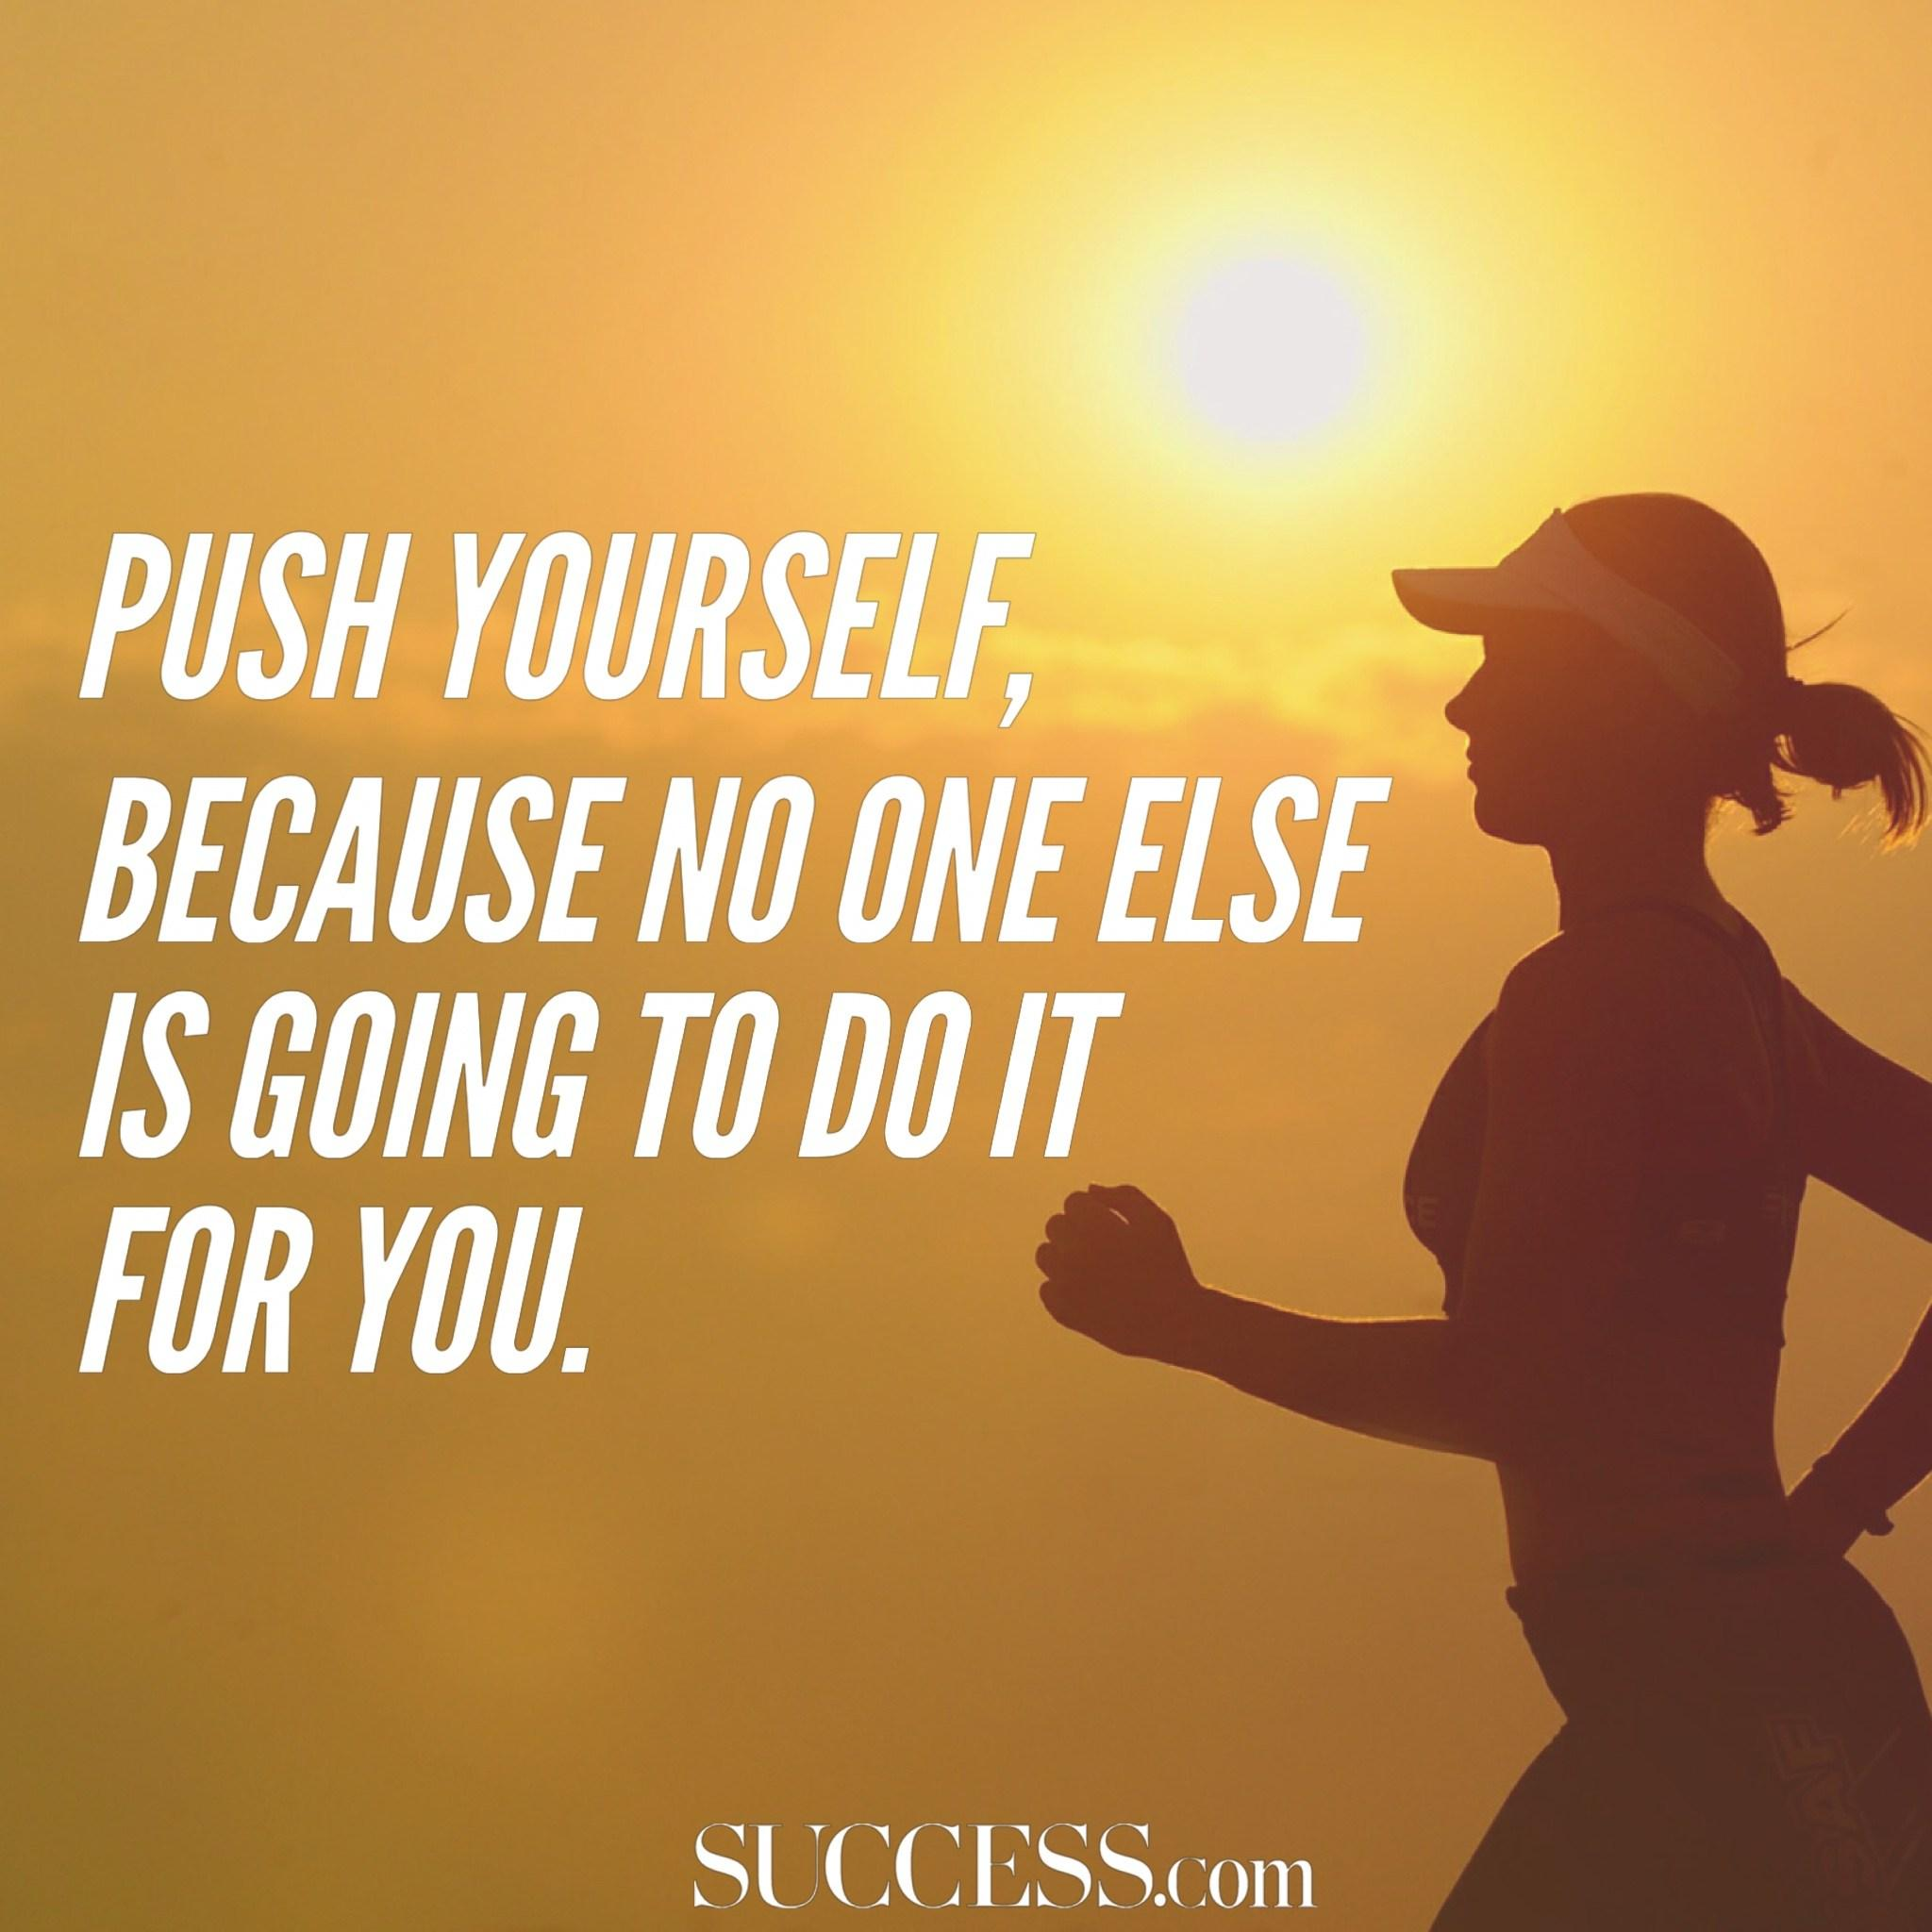 [Image] Push yourself because no one is going to do it for you